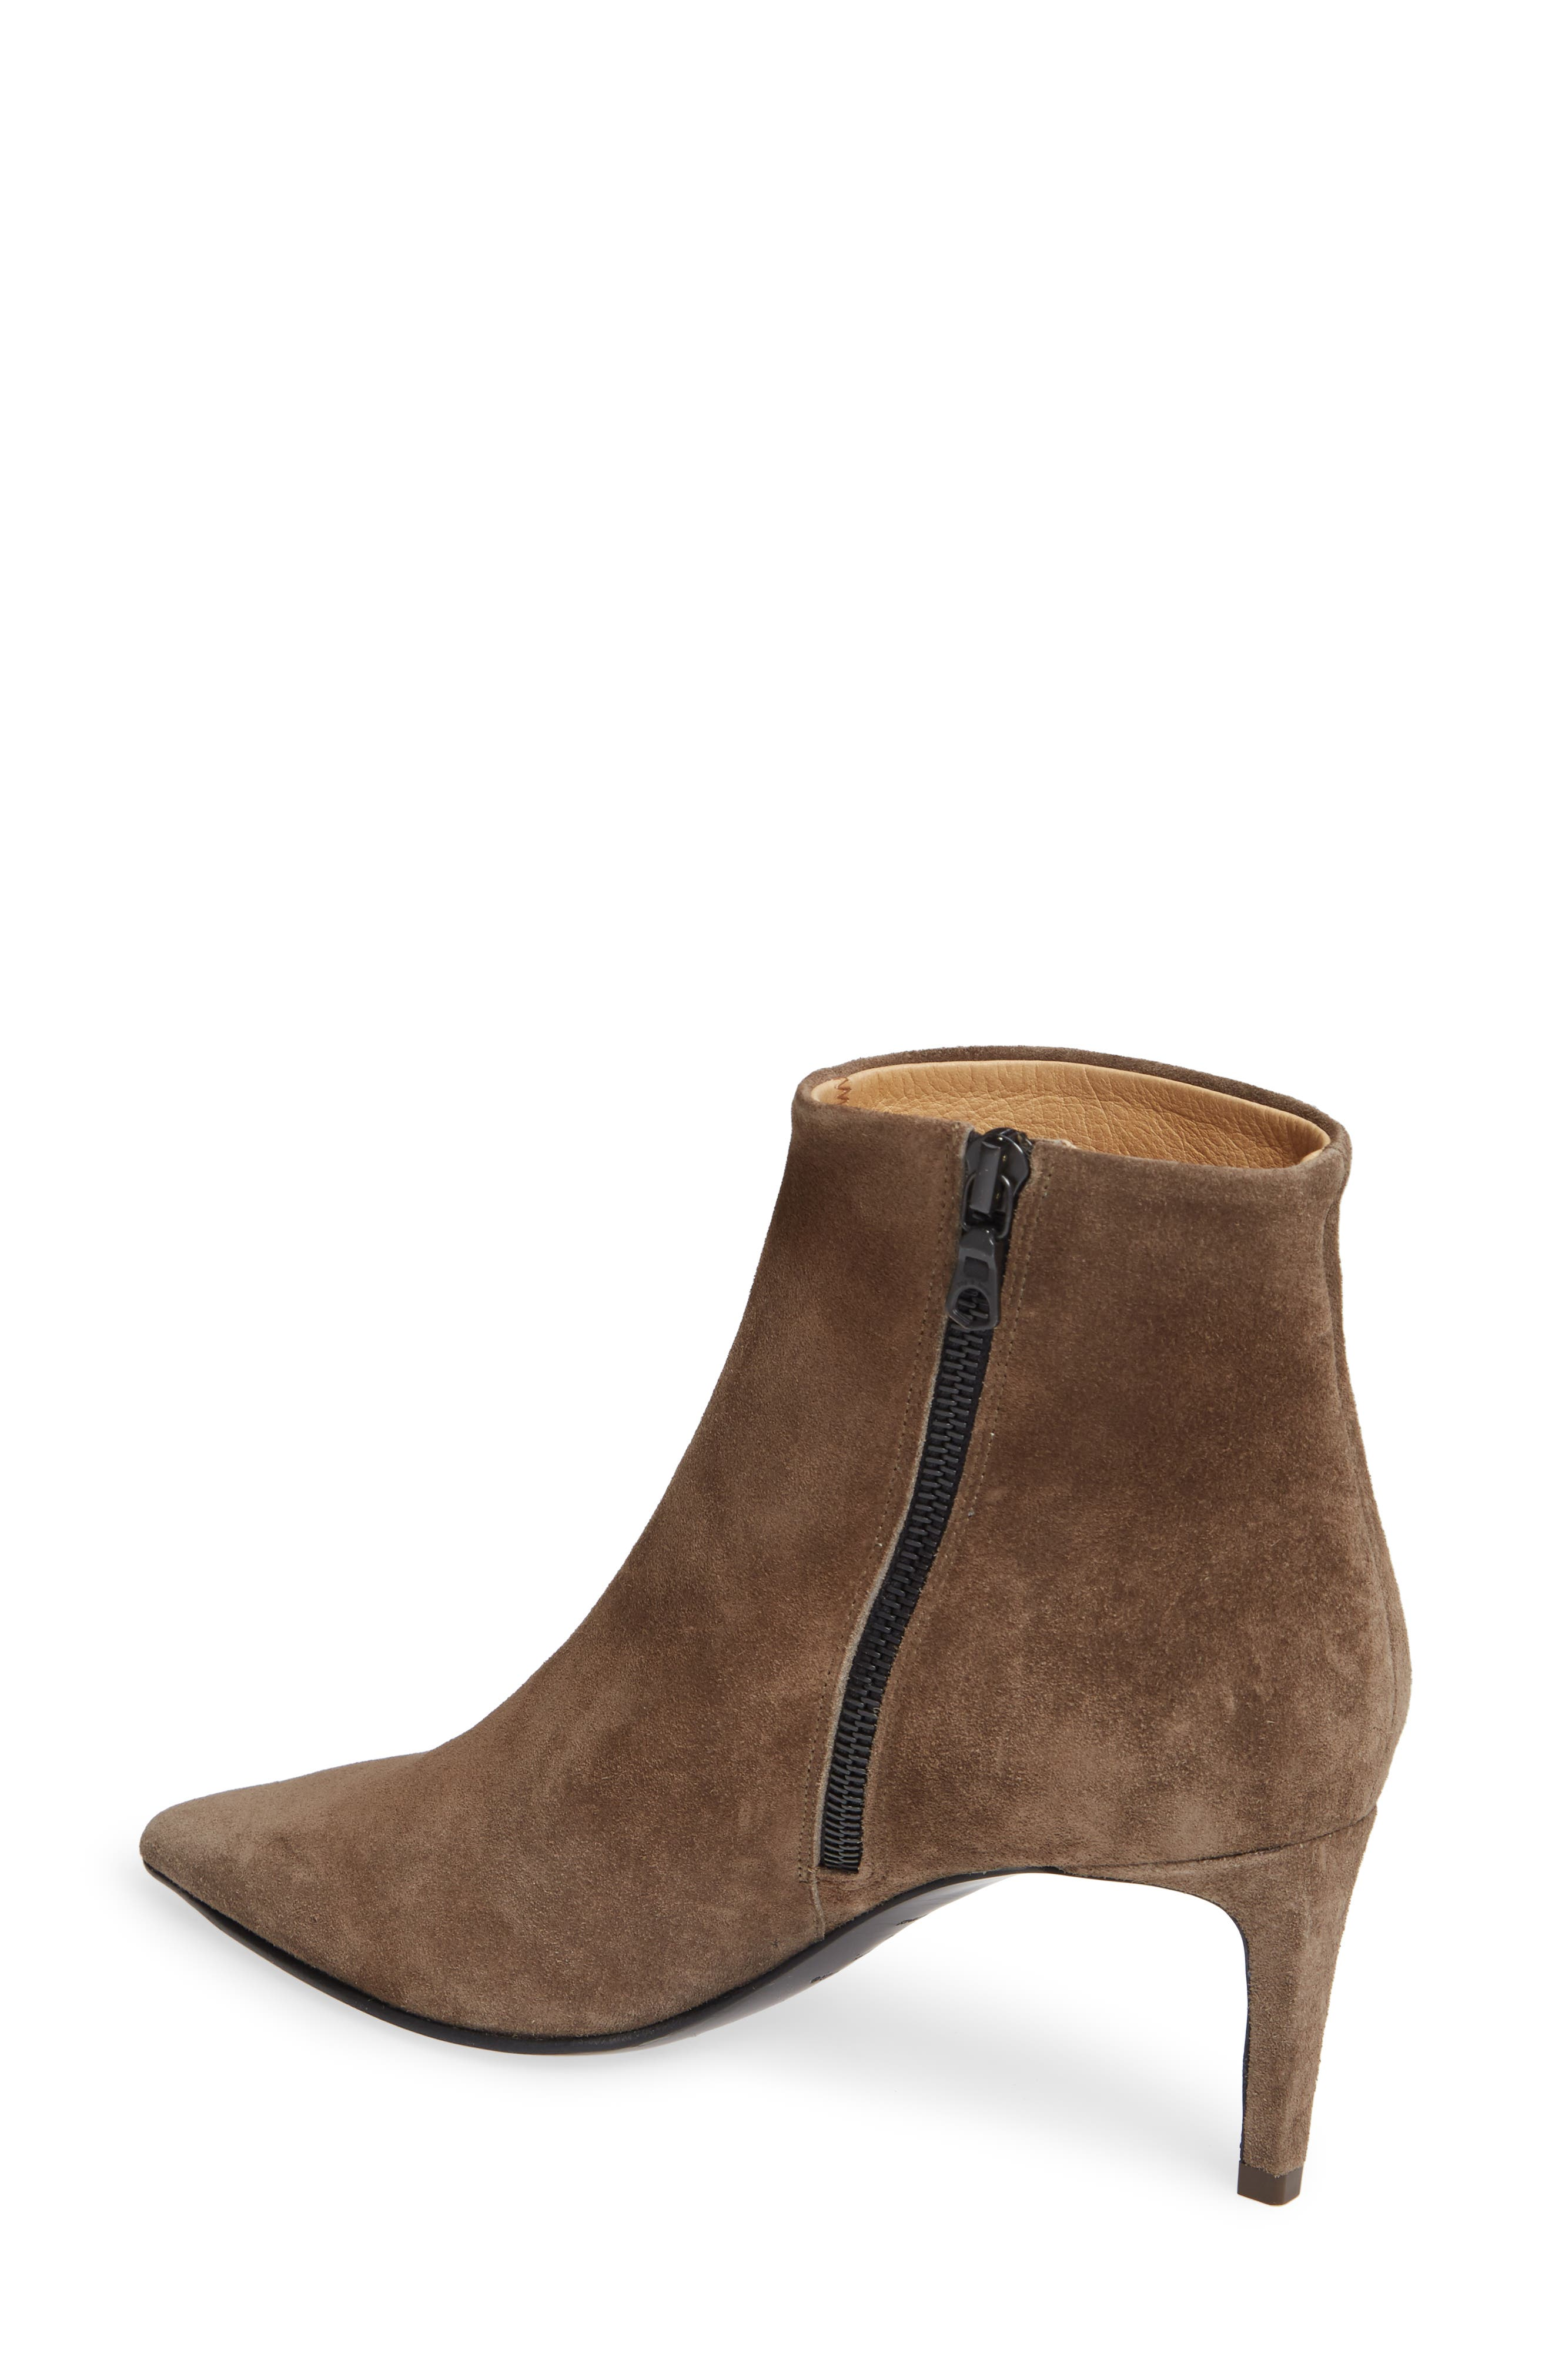 Beha Pointy Toe Bootie,                             Alternate thumbnail 2, color,                             TAUPE SUEDE